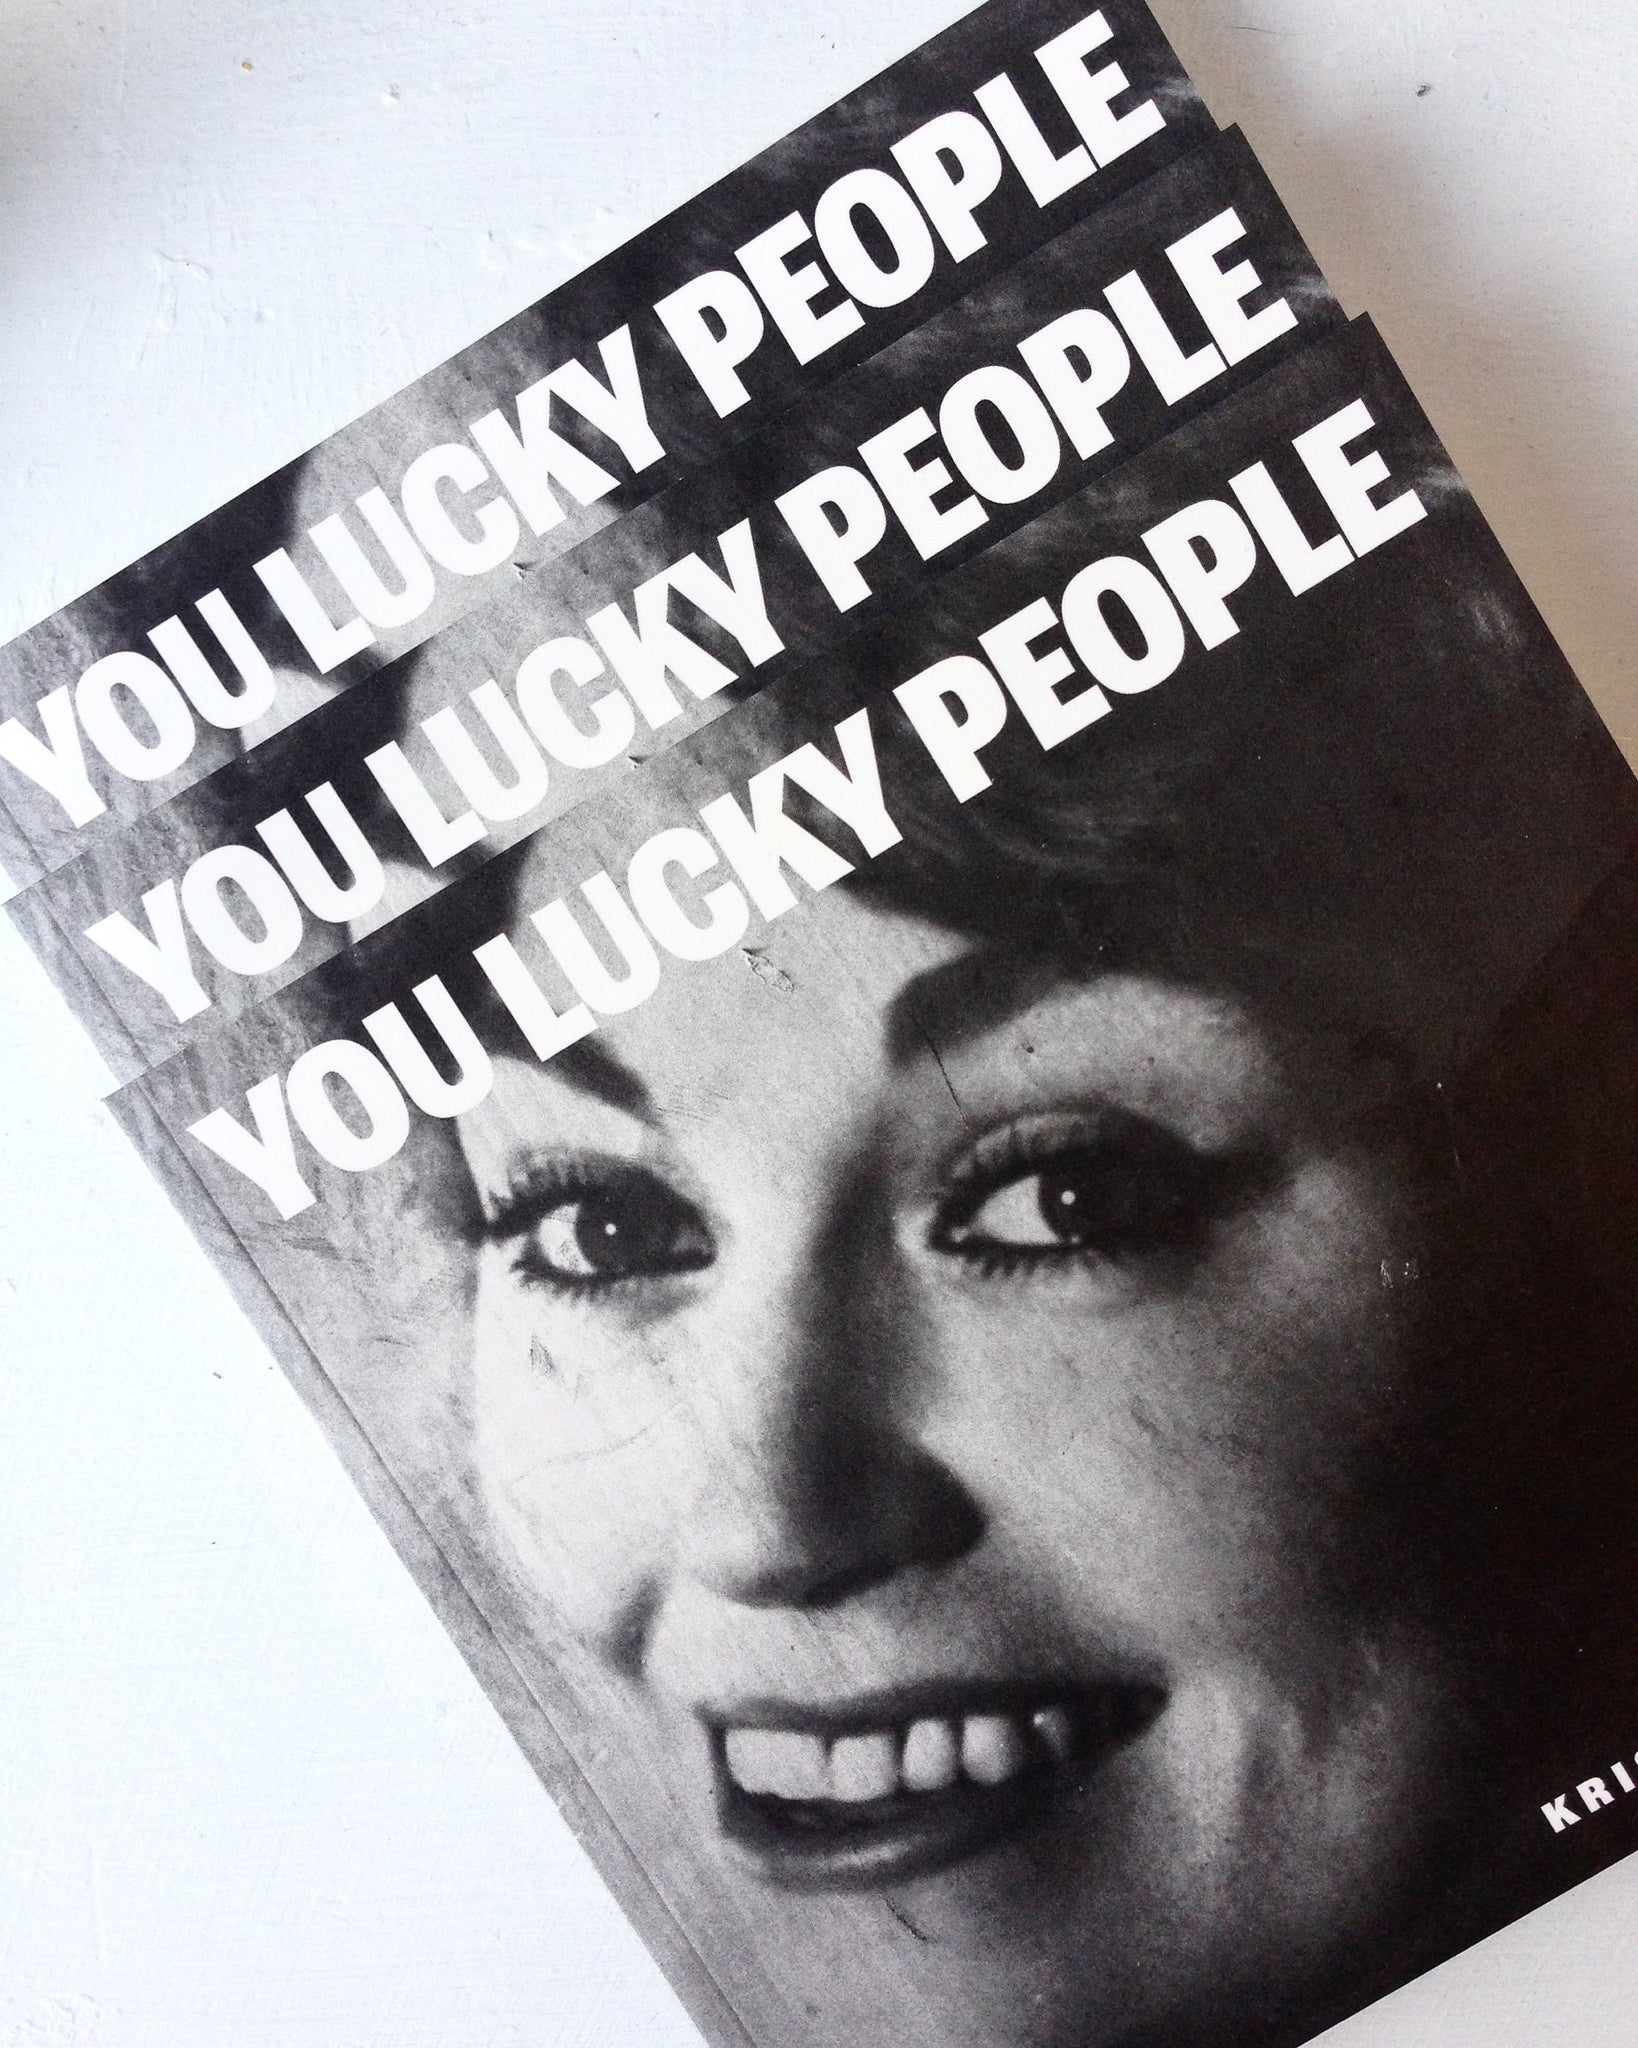 You Lucky People by Kristan Klmczak